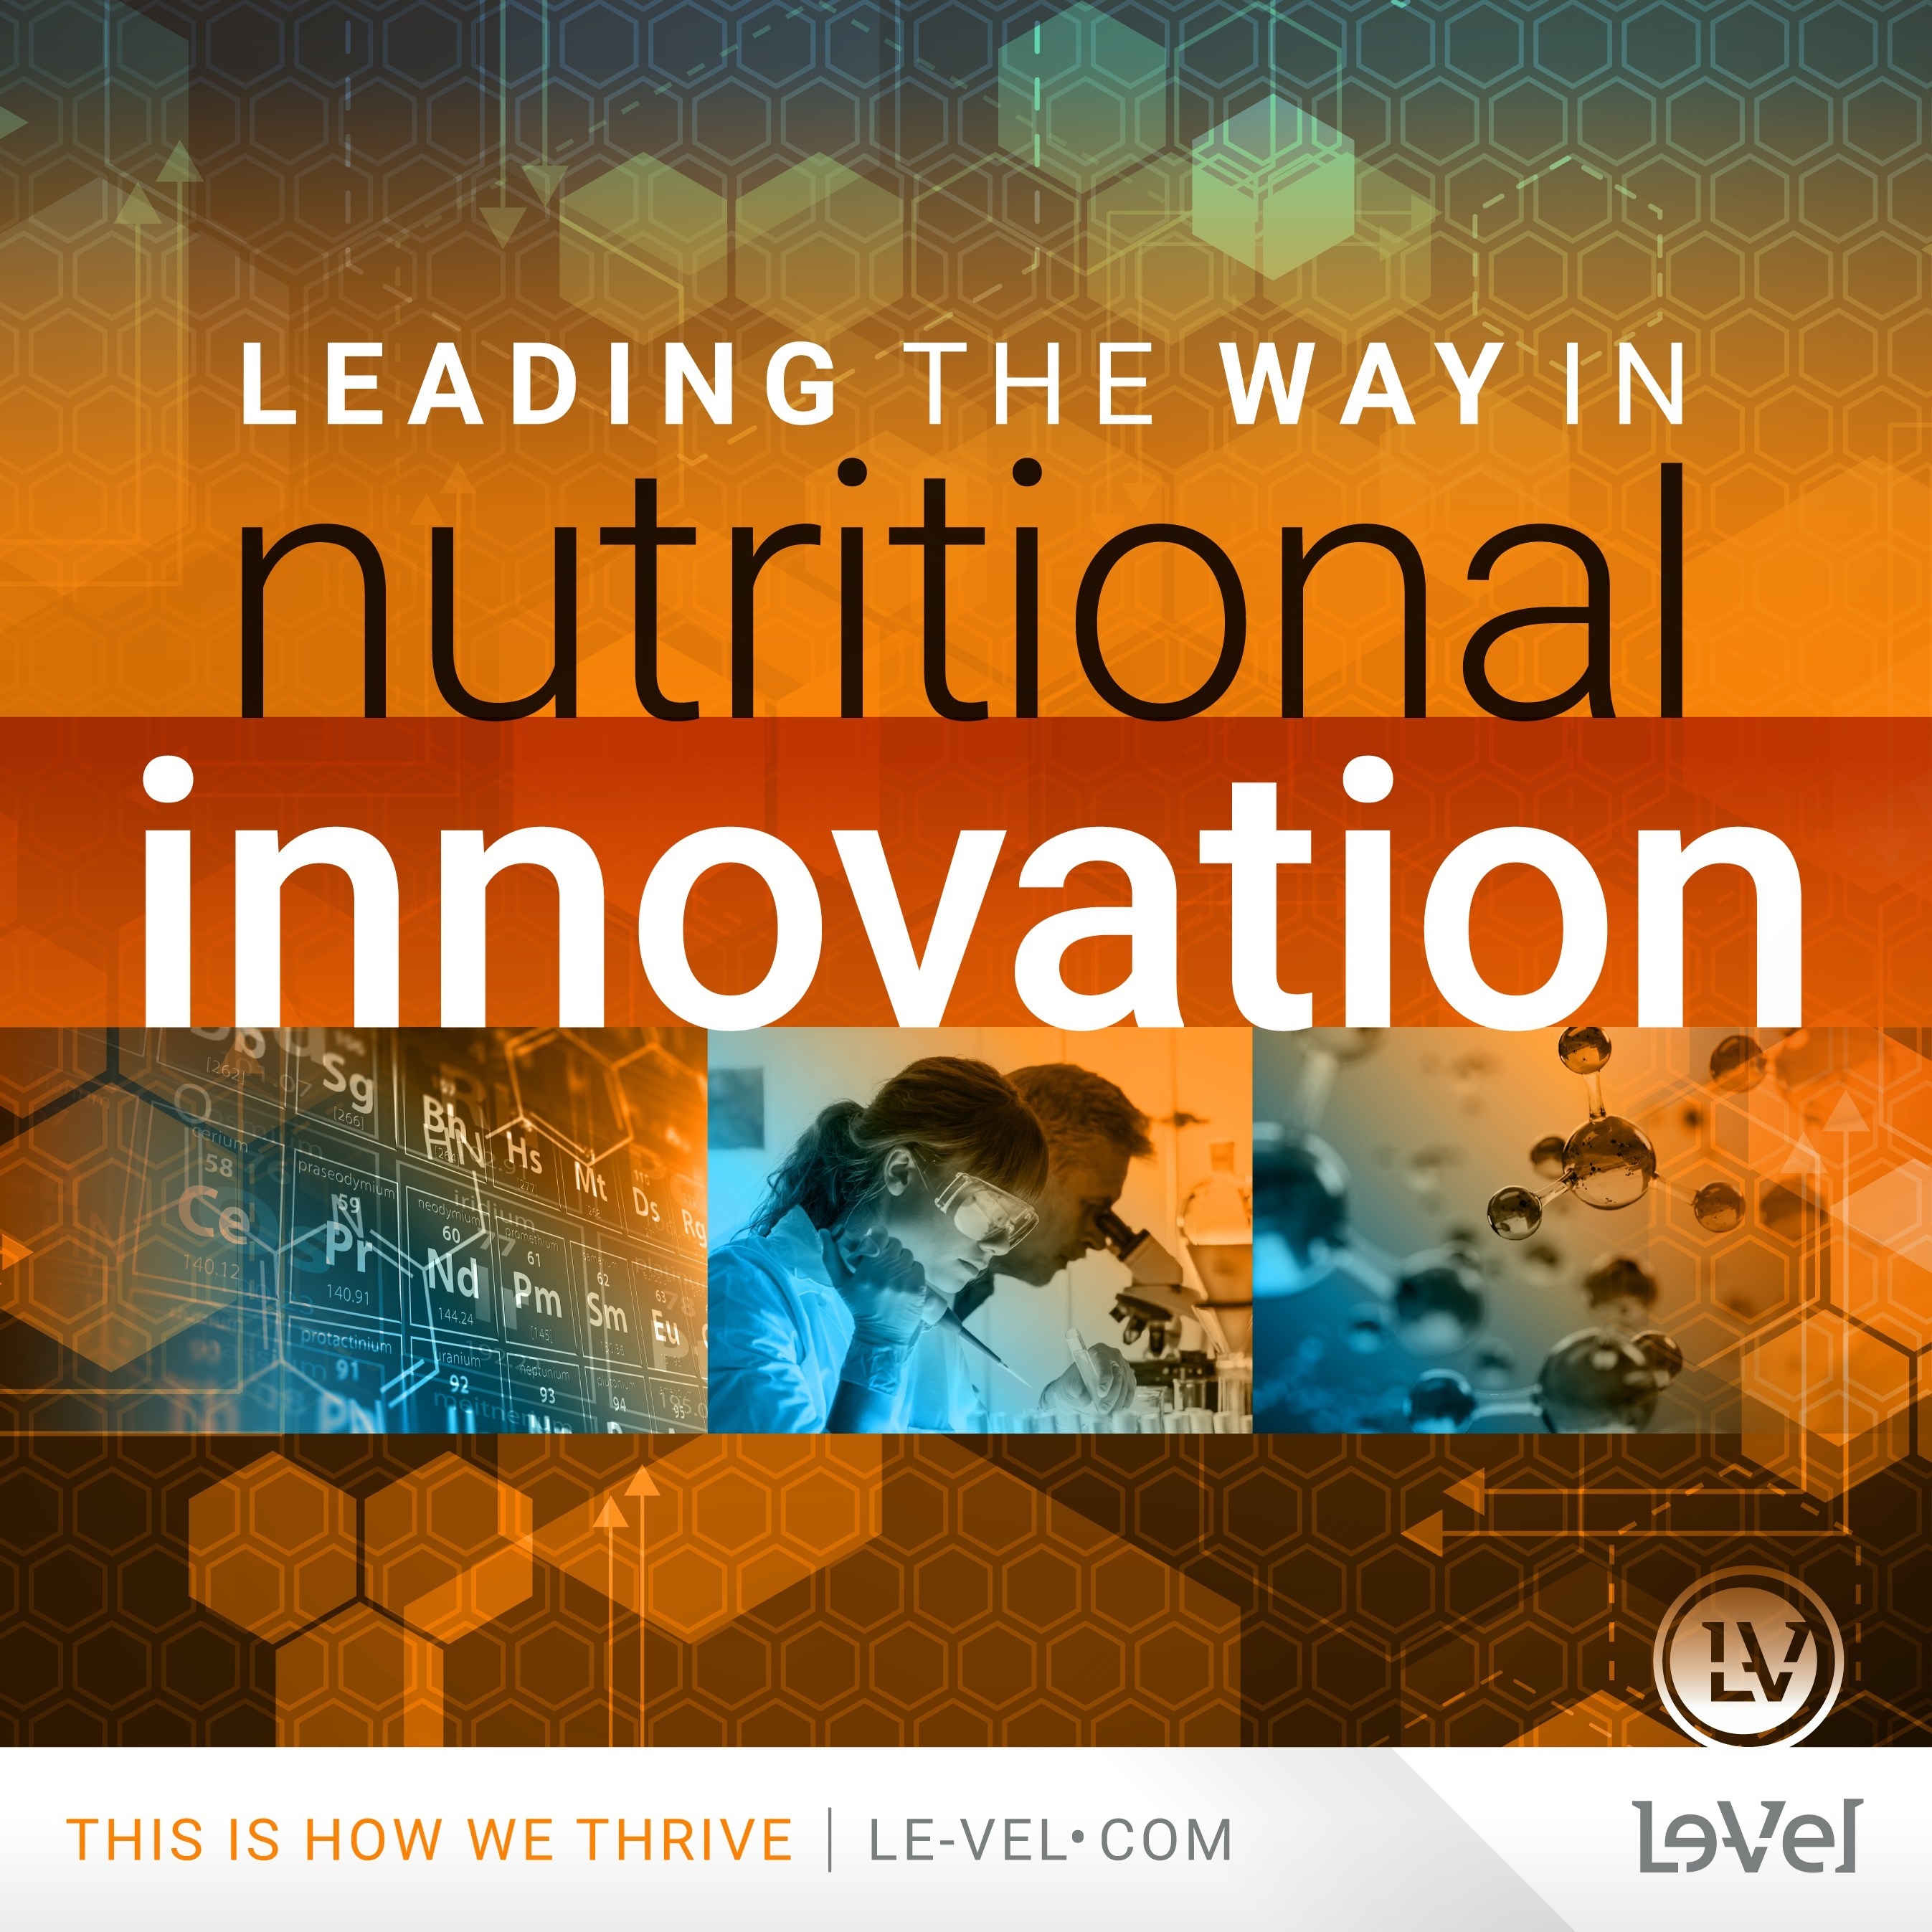 Le-Vel Granted Over 25 Patents Worldwide